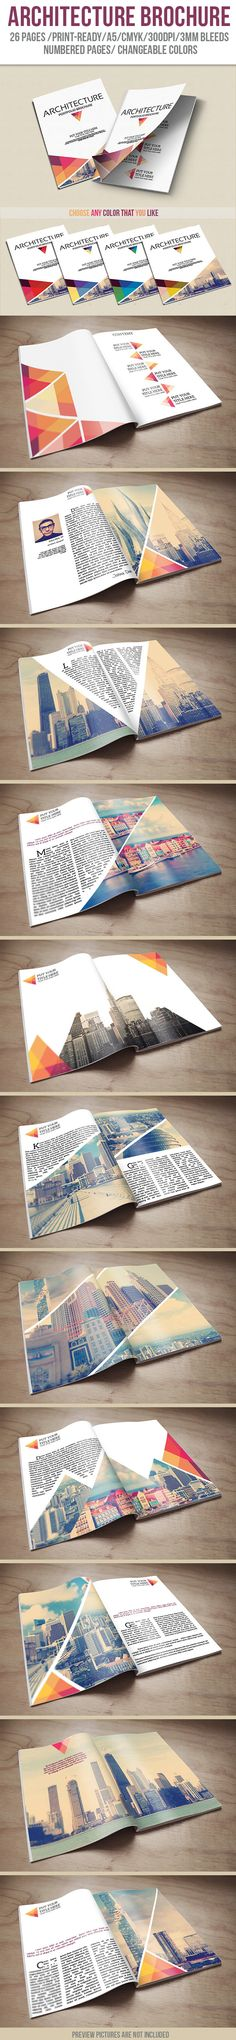 Architecture Portfolio Brochure on Behance